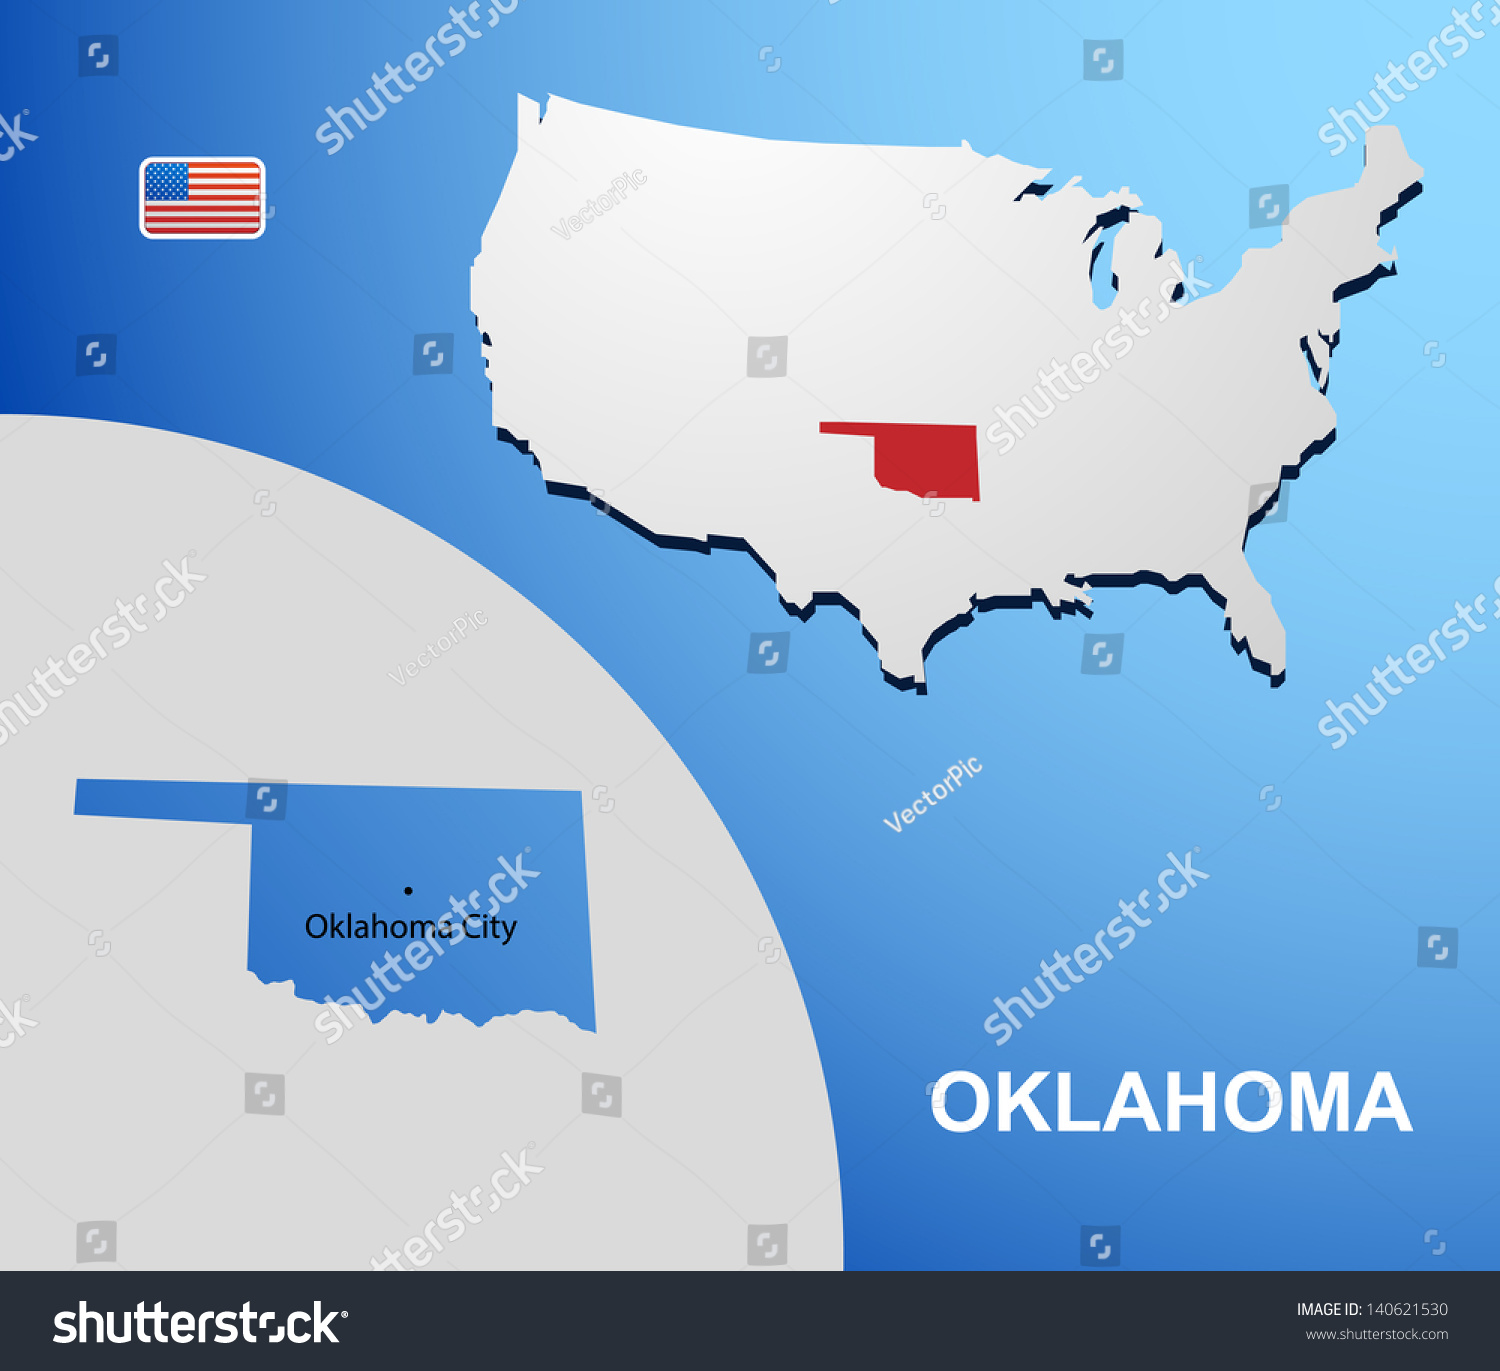 Oklahoma On Map Map Wyoming Map Of The State Of Florida - Us map oklahoma